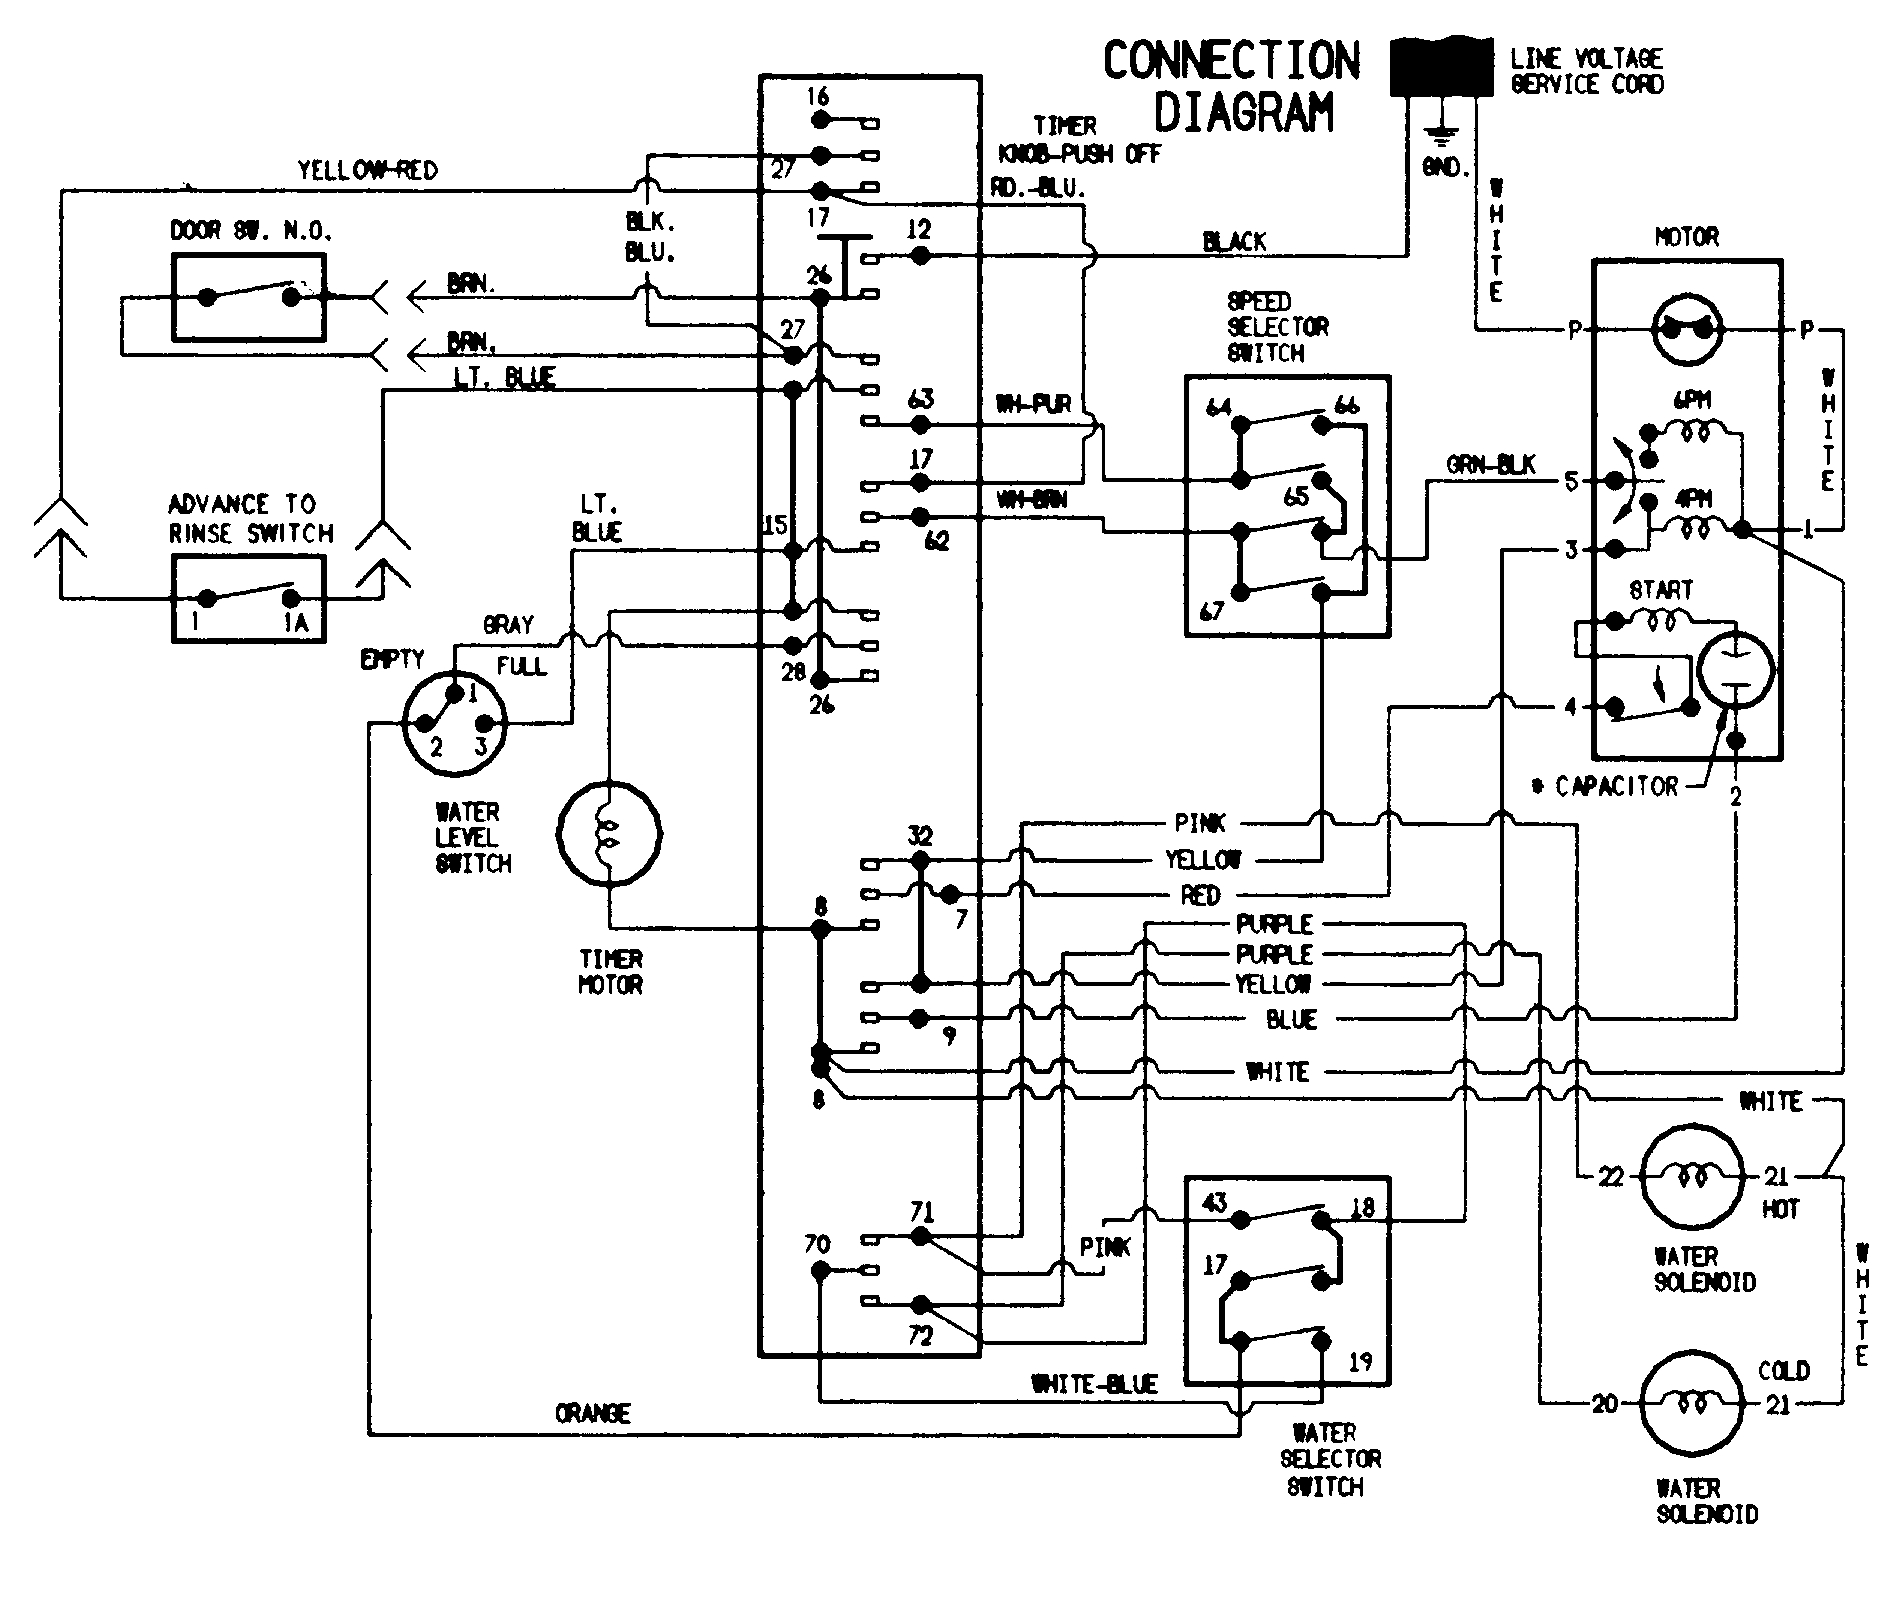 Kenmore 80 Series Electric Dryer Parts Diagram Periodic Kenmore 80 Series Electric Dryer Wiring Diagram Elite